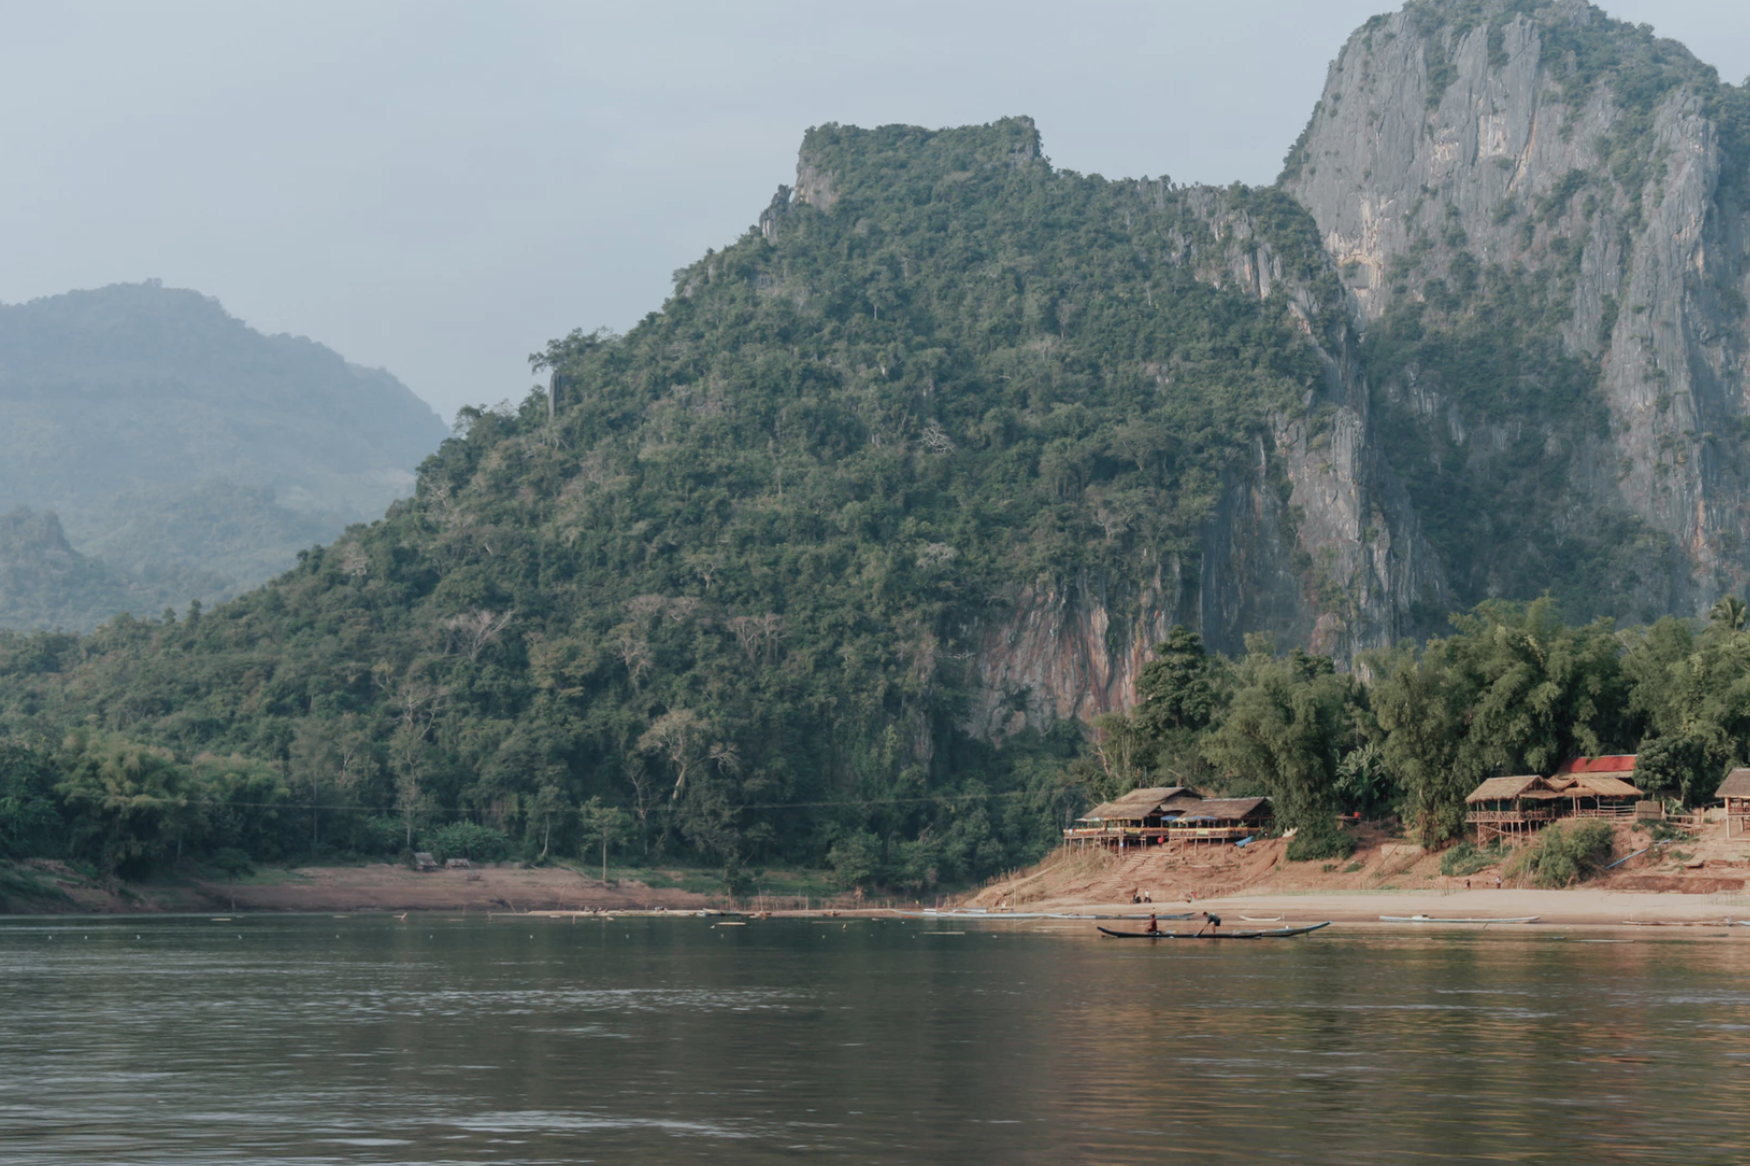 The Mekong is the world's twelfth longest river and the seventh longest in Asia. Photo courtesy: unsplash.com